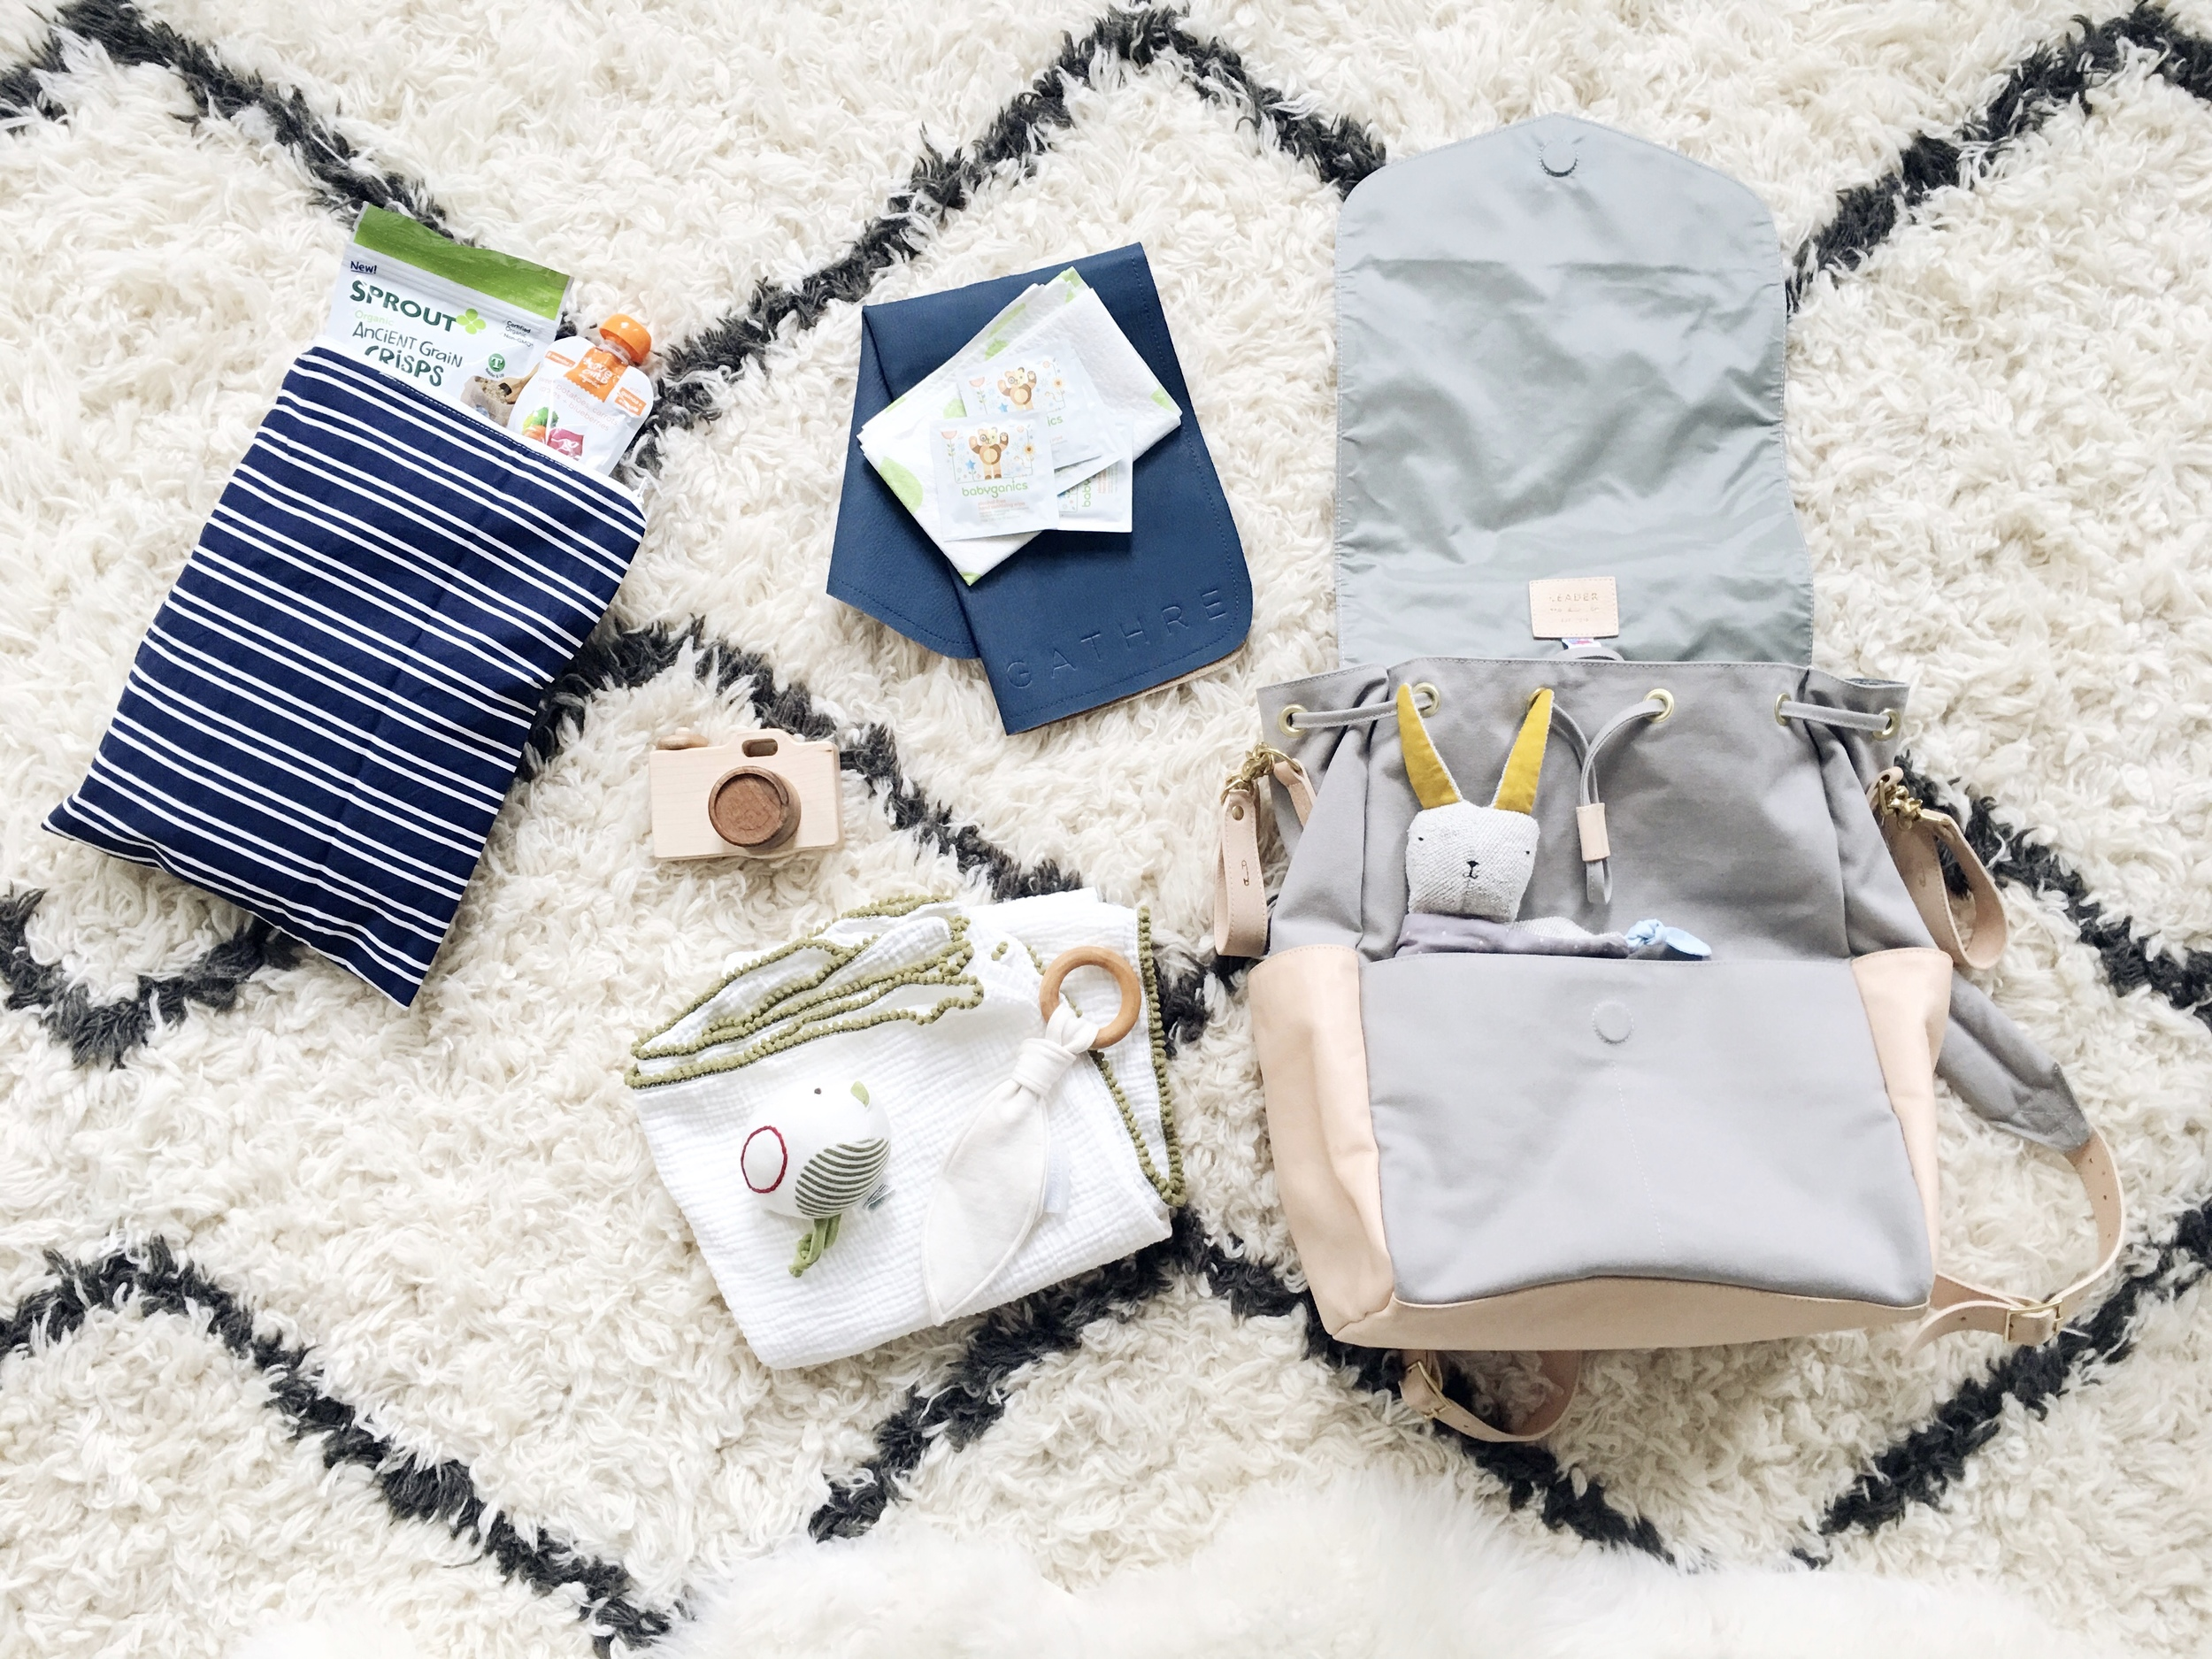 From Top Left:  Itzy Ritzy wet bag ,snacks,  Gathre mat ,  Babyganics wipes ,  Little Sapling Toys camera ,  Hazel Village rattle ,  Ollie and Tate teether ,  Charley Charles swaddle blanket ,  Leader Bag Co. diaper bag ,  Bitte Shop lovie .